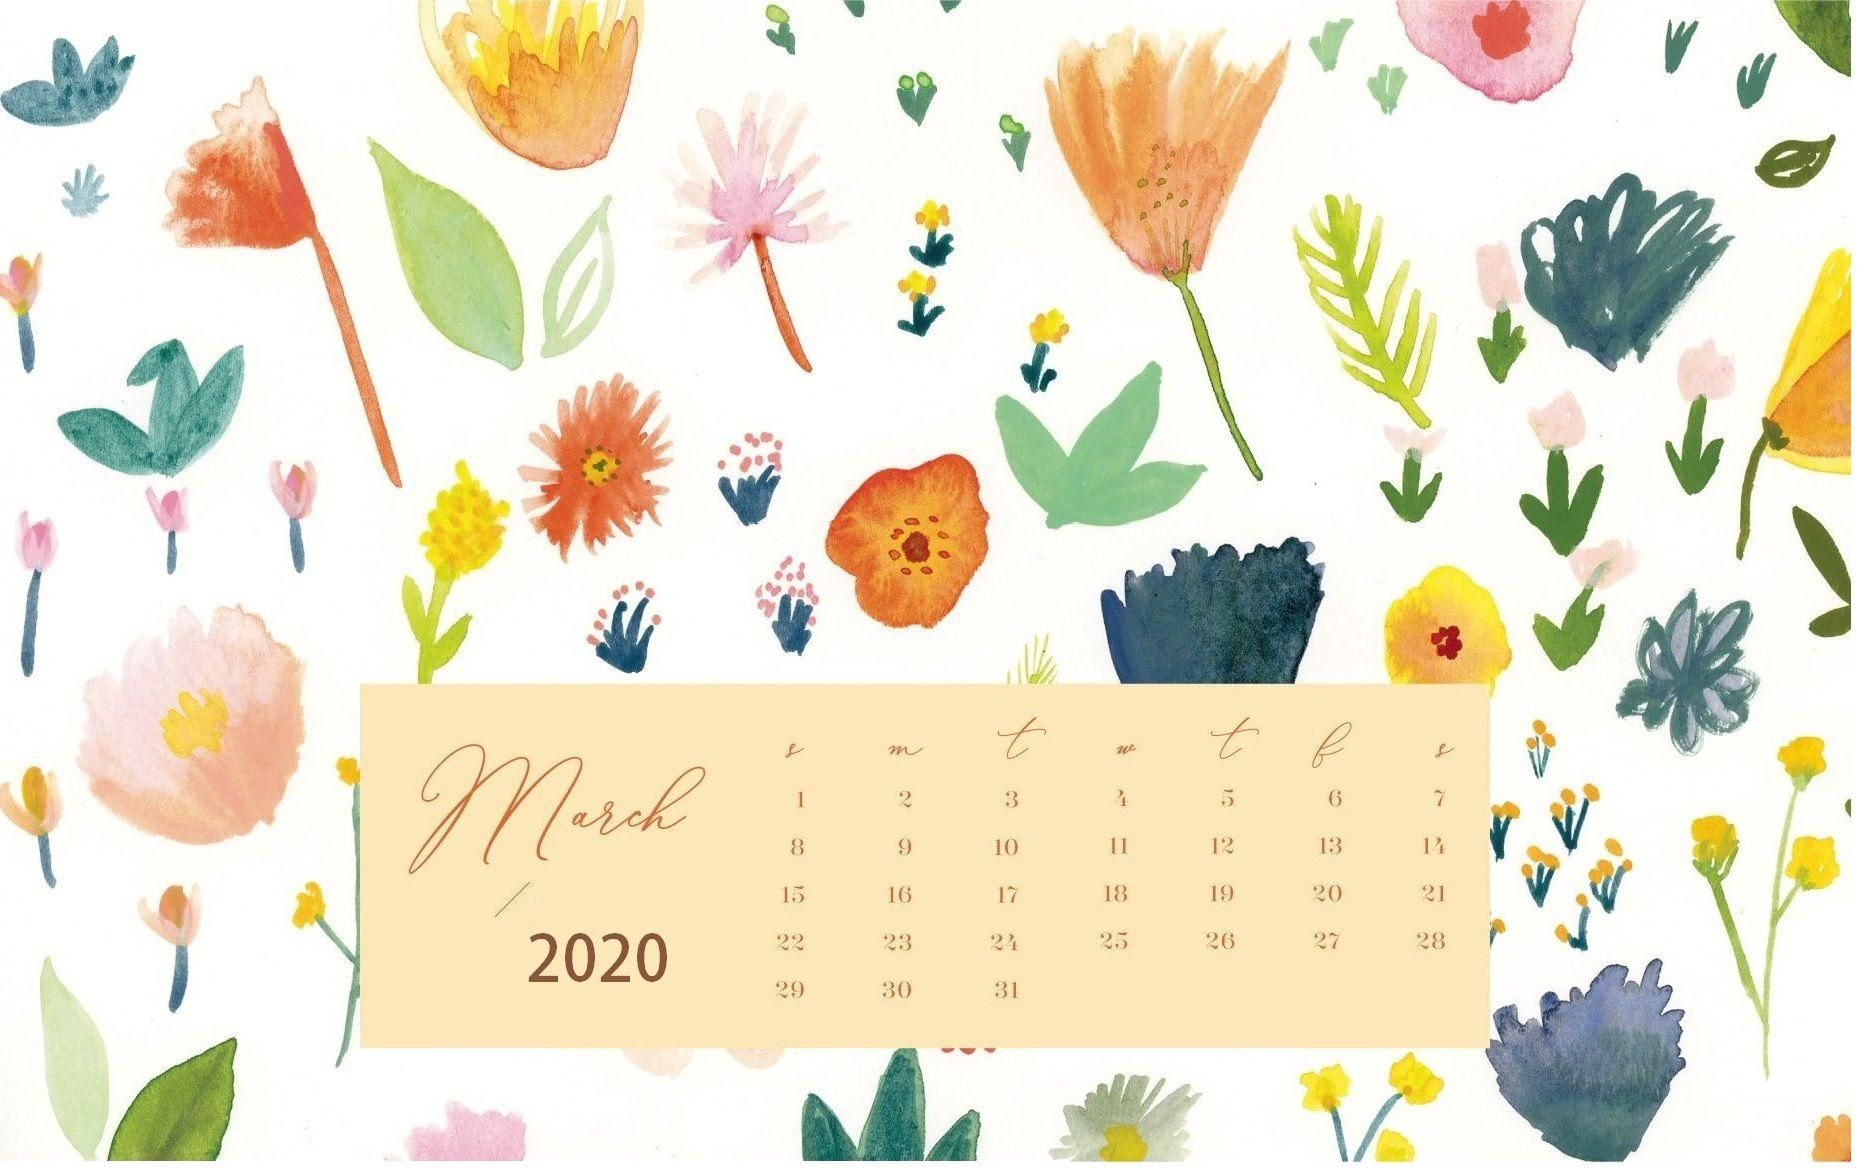 May 2020 Desktop Calendar Wallpaper in 2020 (With images